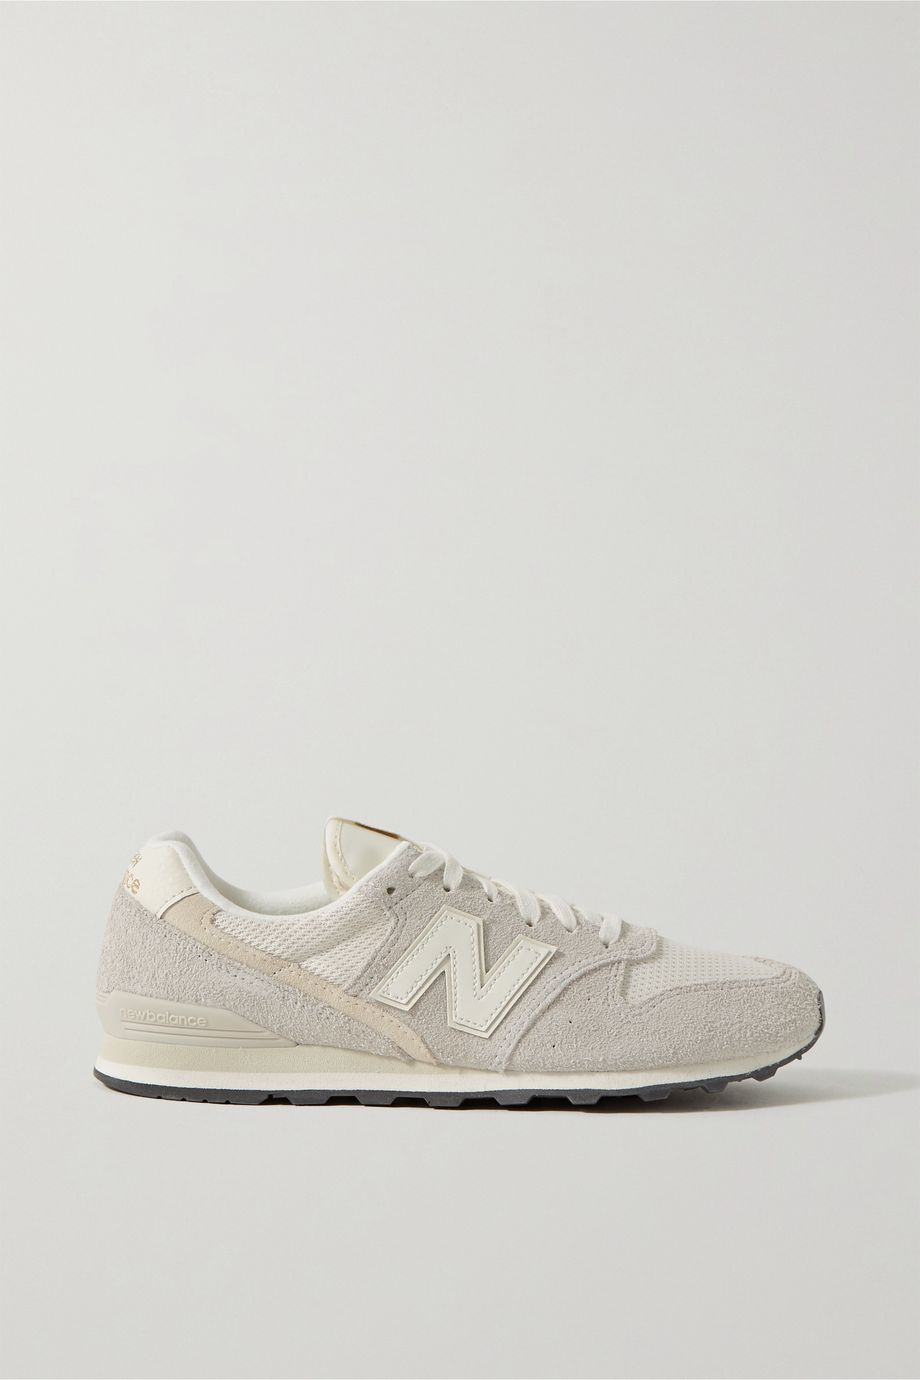 New Balance 996 suede, mesh and leather sneakers